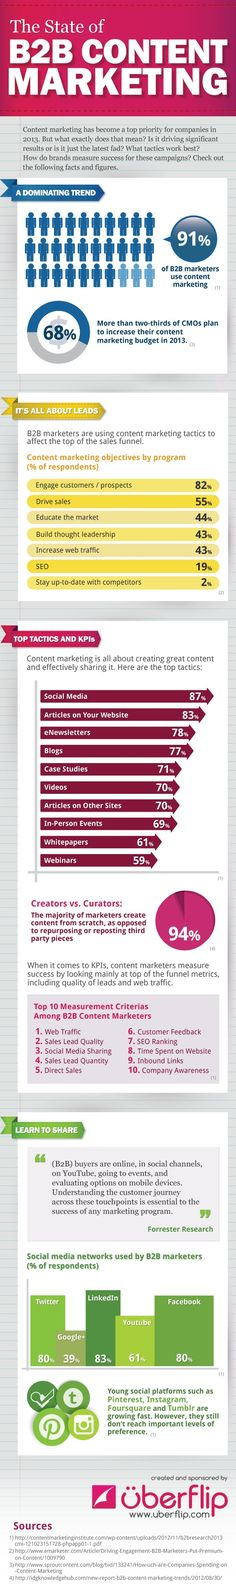 Content - The State of B2B Content Marketing [Infographic] : MarketingProfs Article